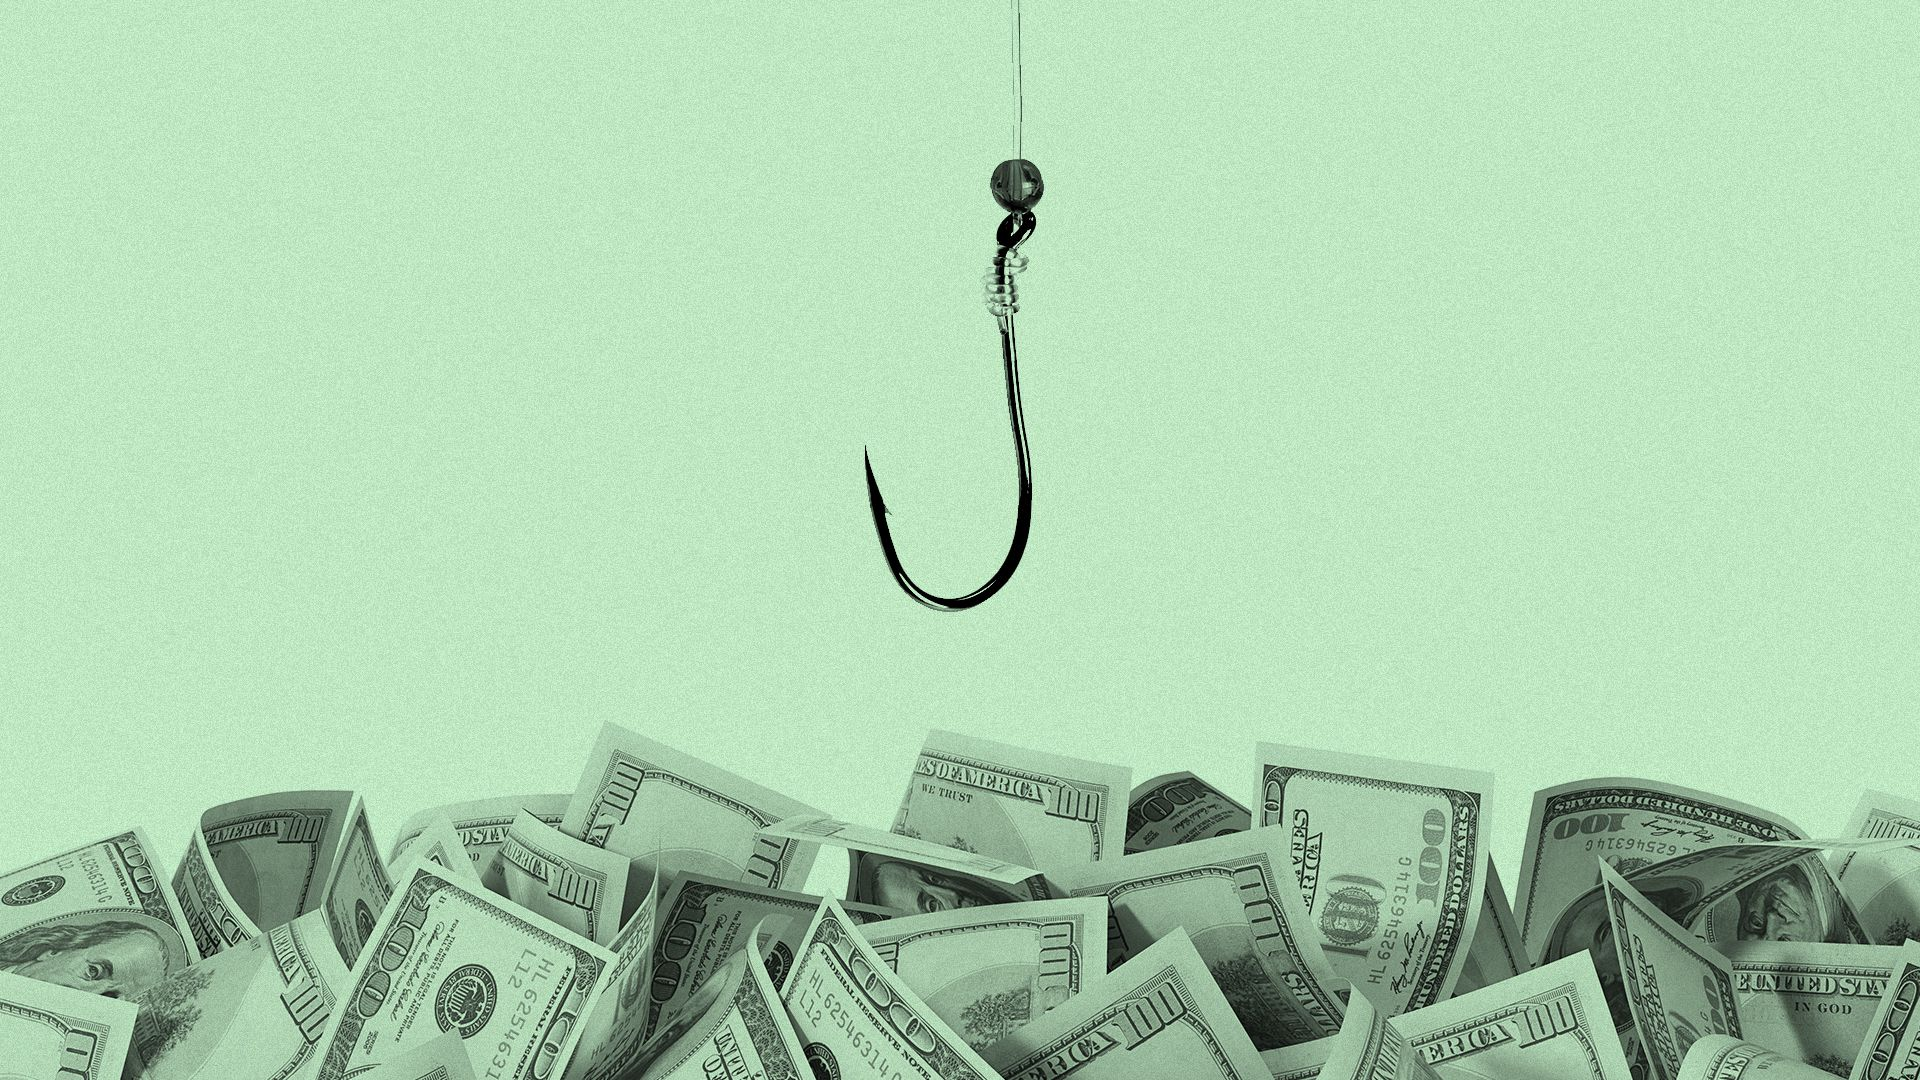 A fishing hook sinking into an ocean of hundred dollar bills